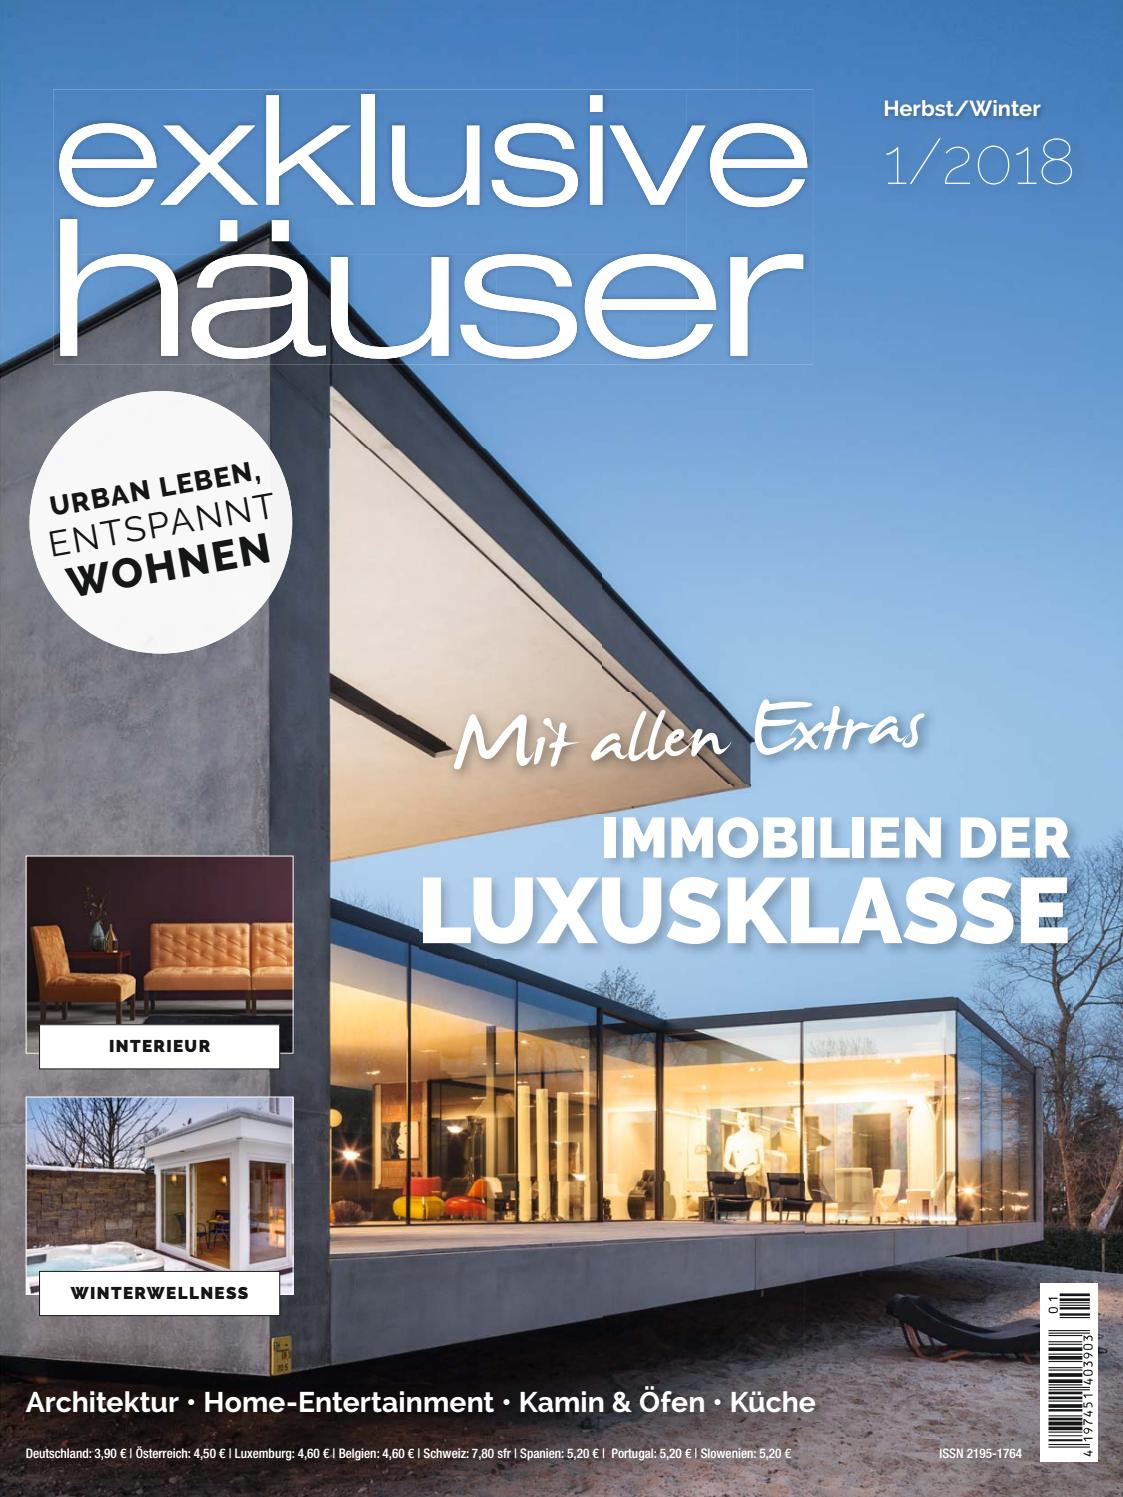 exklusive h user 1 2018 by family home verlag gmbh issuu. Black Bedroom Furniture Sets. Home Design Ideas